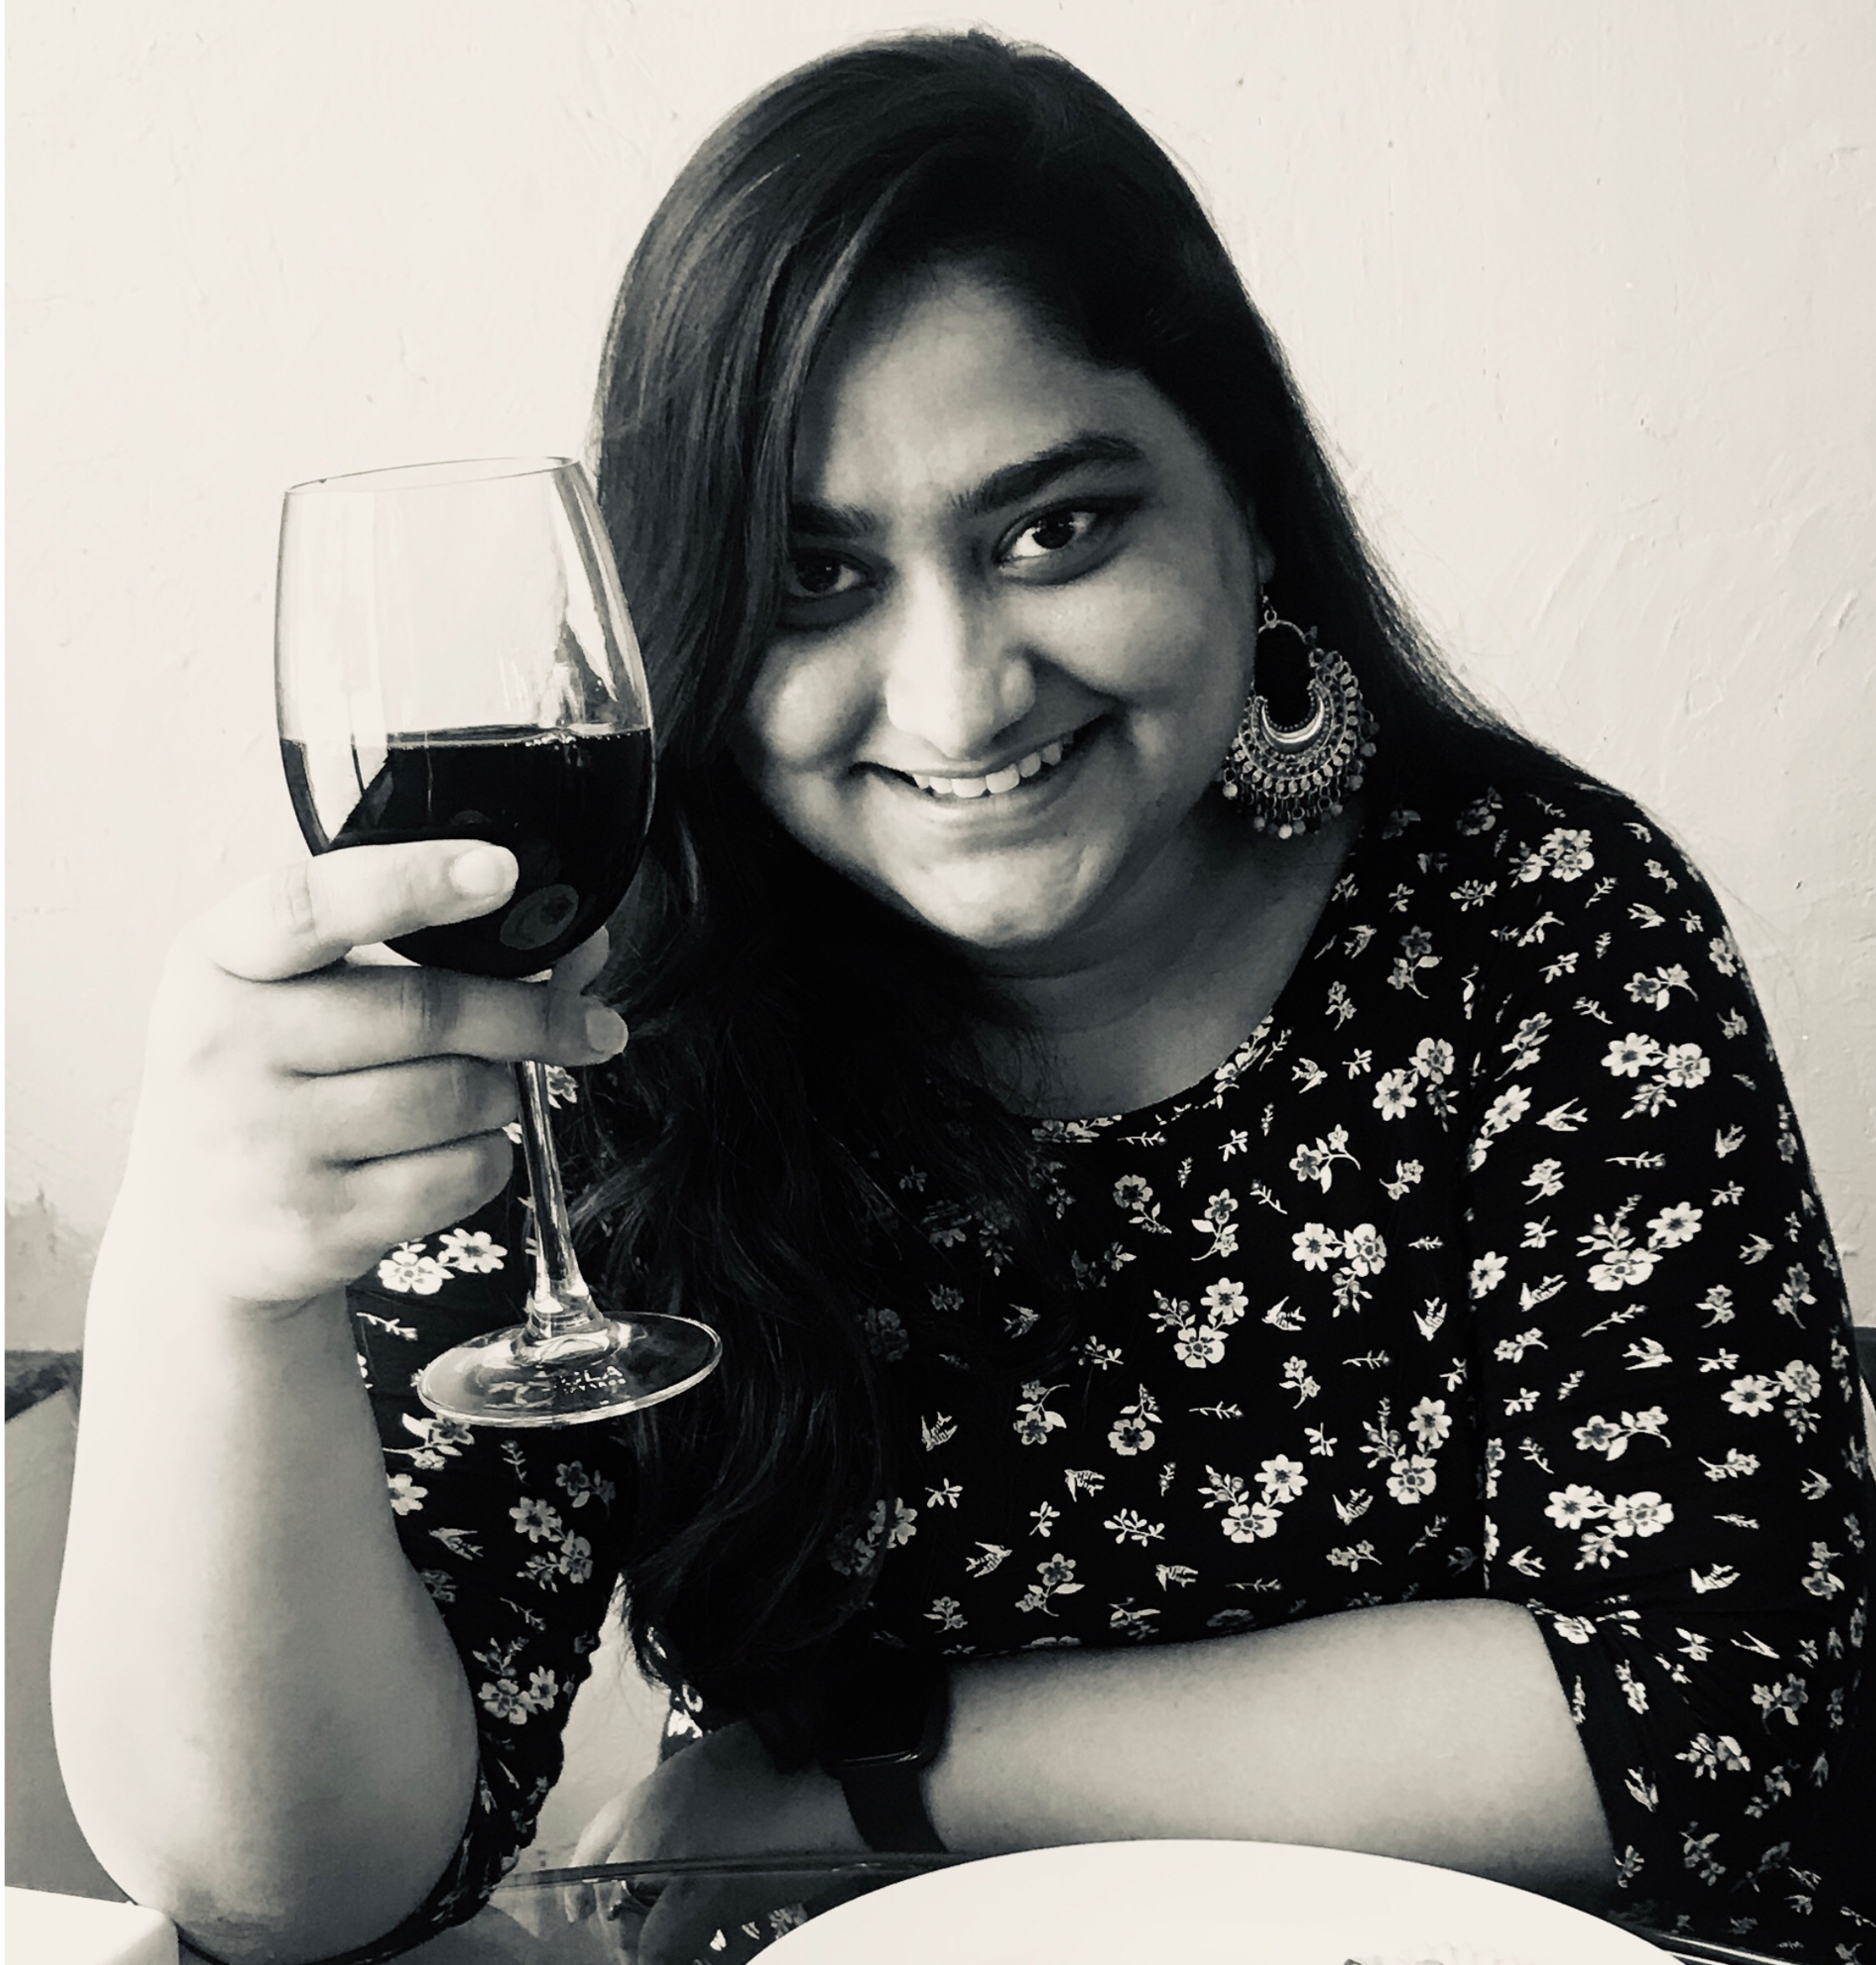 thatbhaumikgirl with a glass of wine